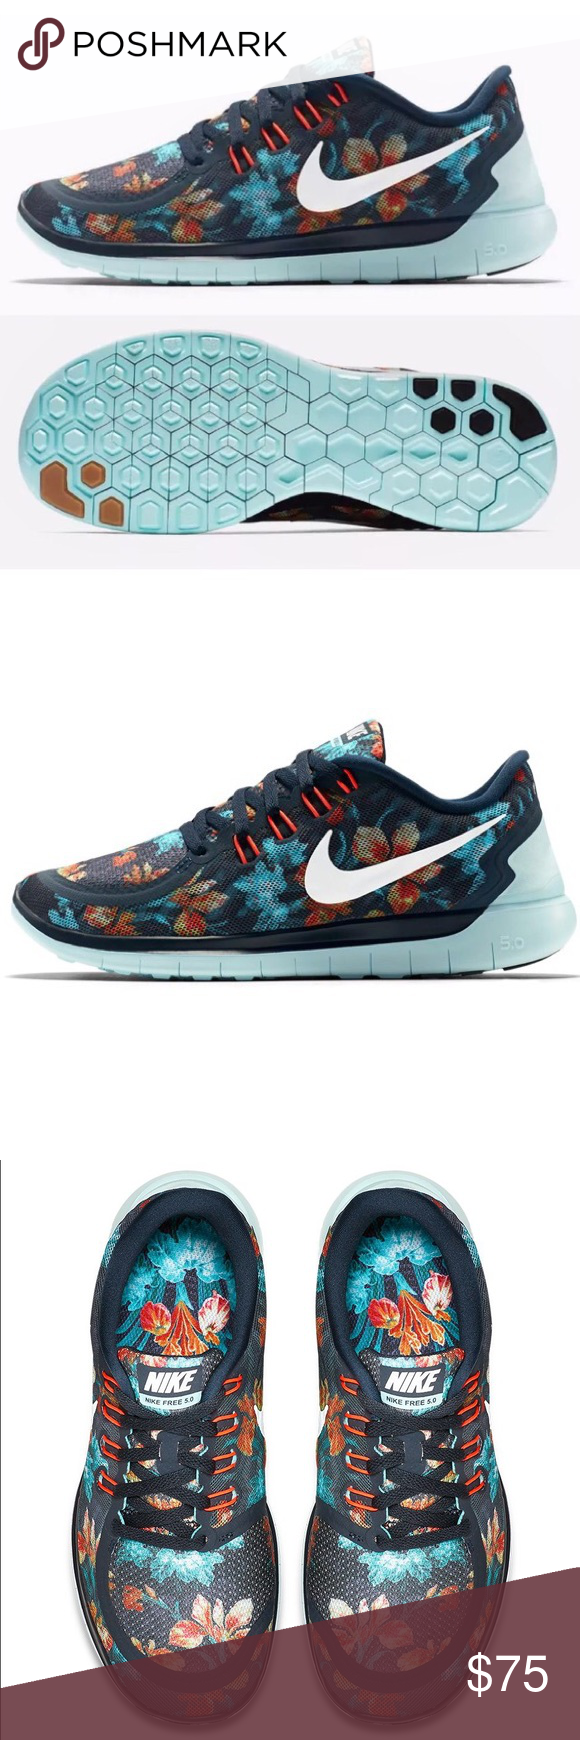 Nike Free 5.0 Photosynthesis Running Sneakers Brand new WITHOUT box,  women's size 5.5. Nike